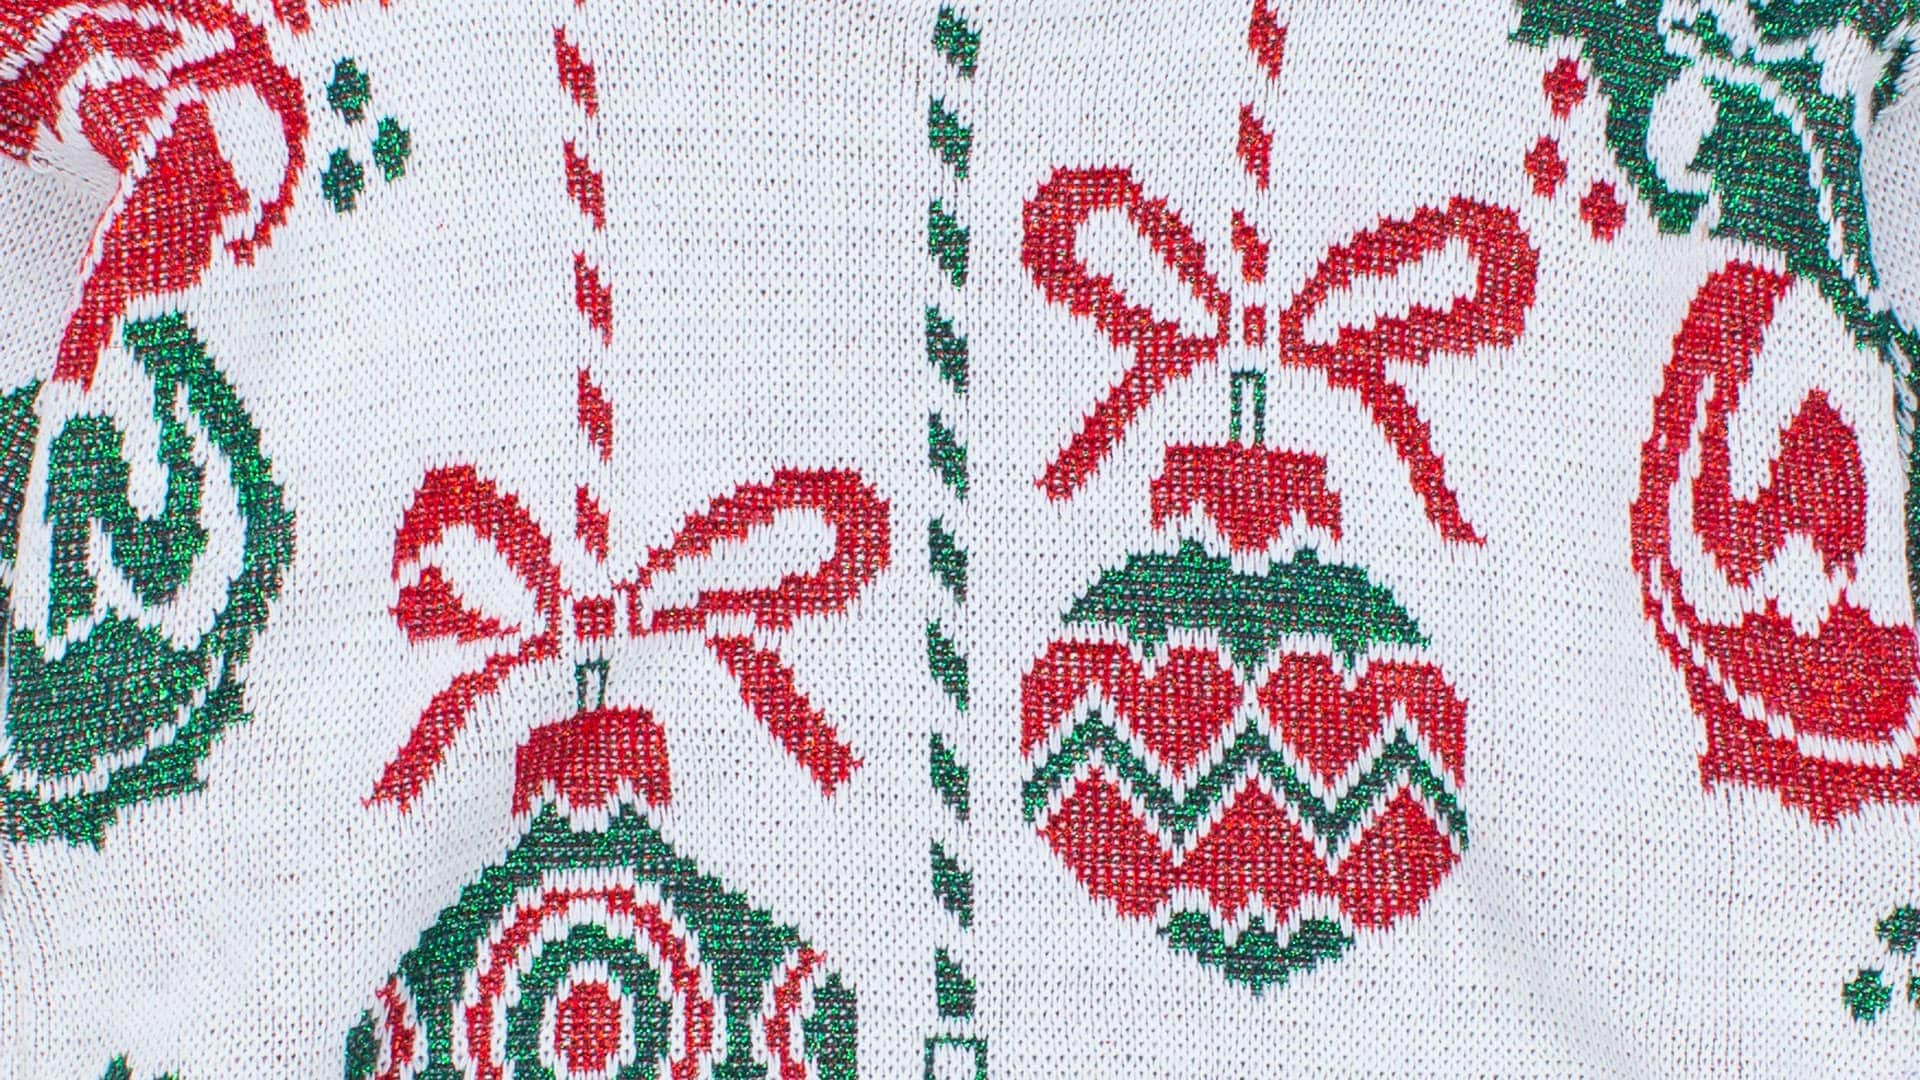 Ugly Christmas sweater featuring a close up of ornaments sewn with metallic thread.